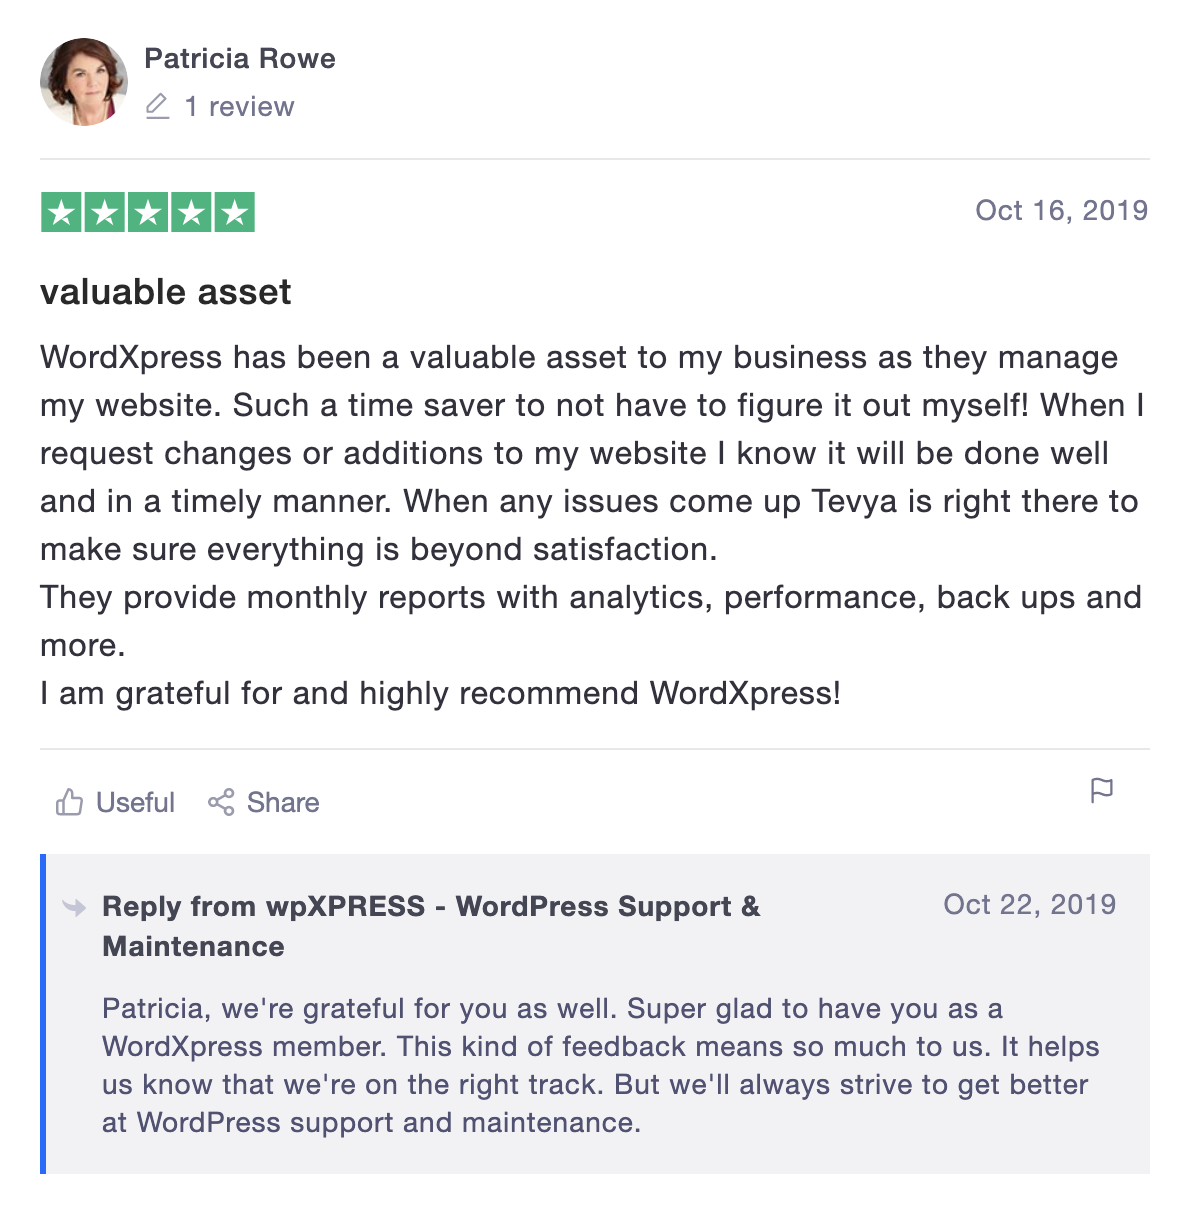 Review for Tevya from wpXPRESS